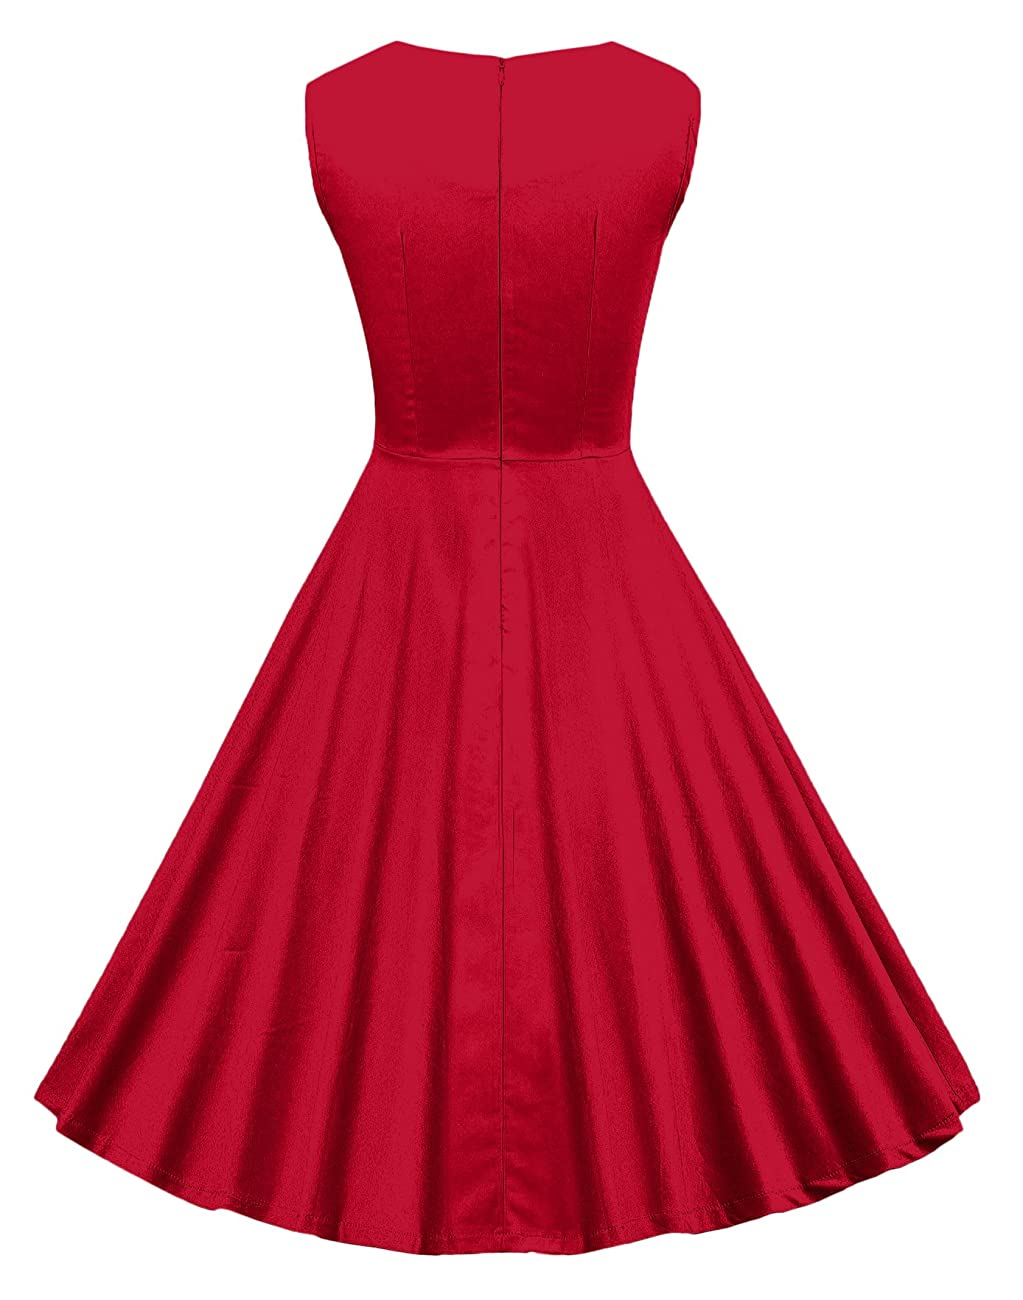 VOGVOG Women's 1950s Retro Vintage Cap Sleeve Party Swing Dress 1